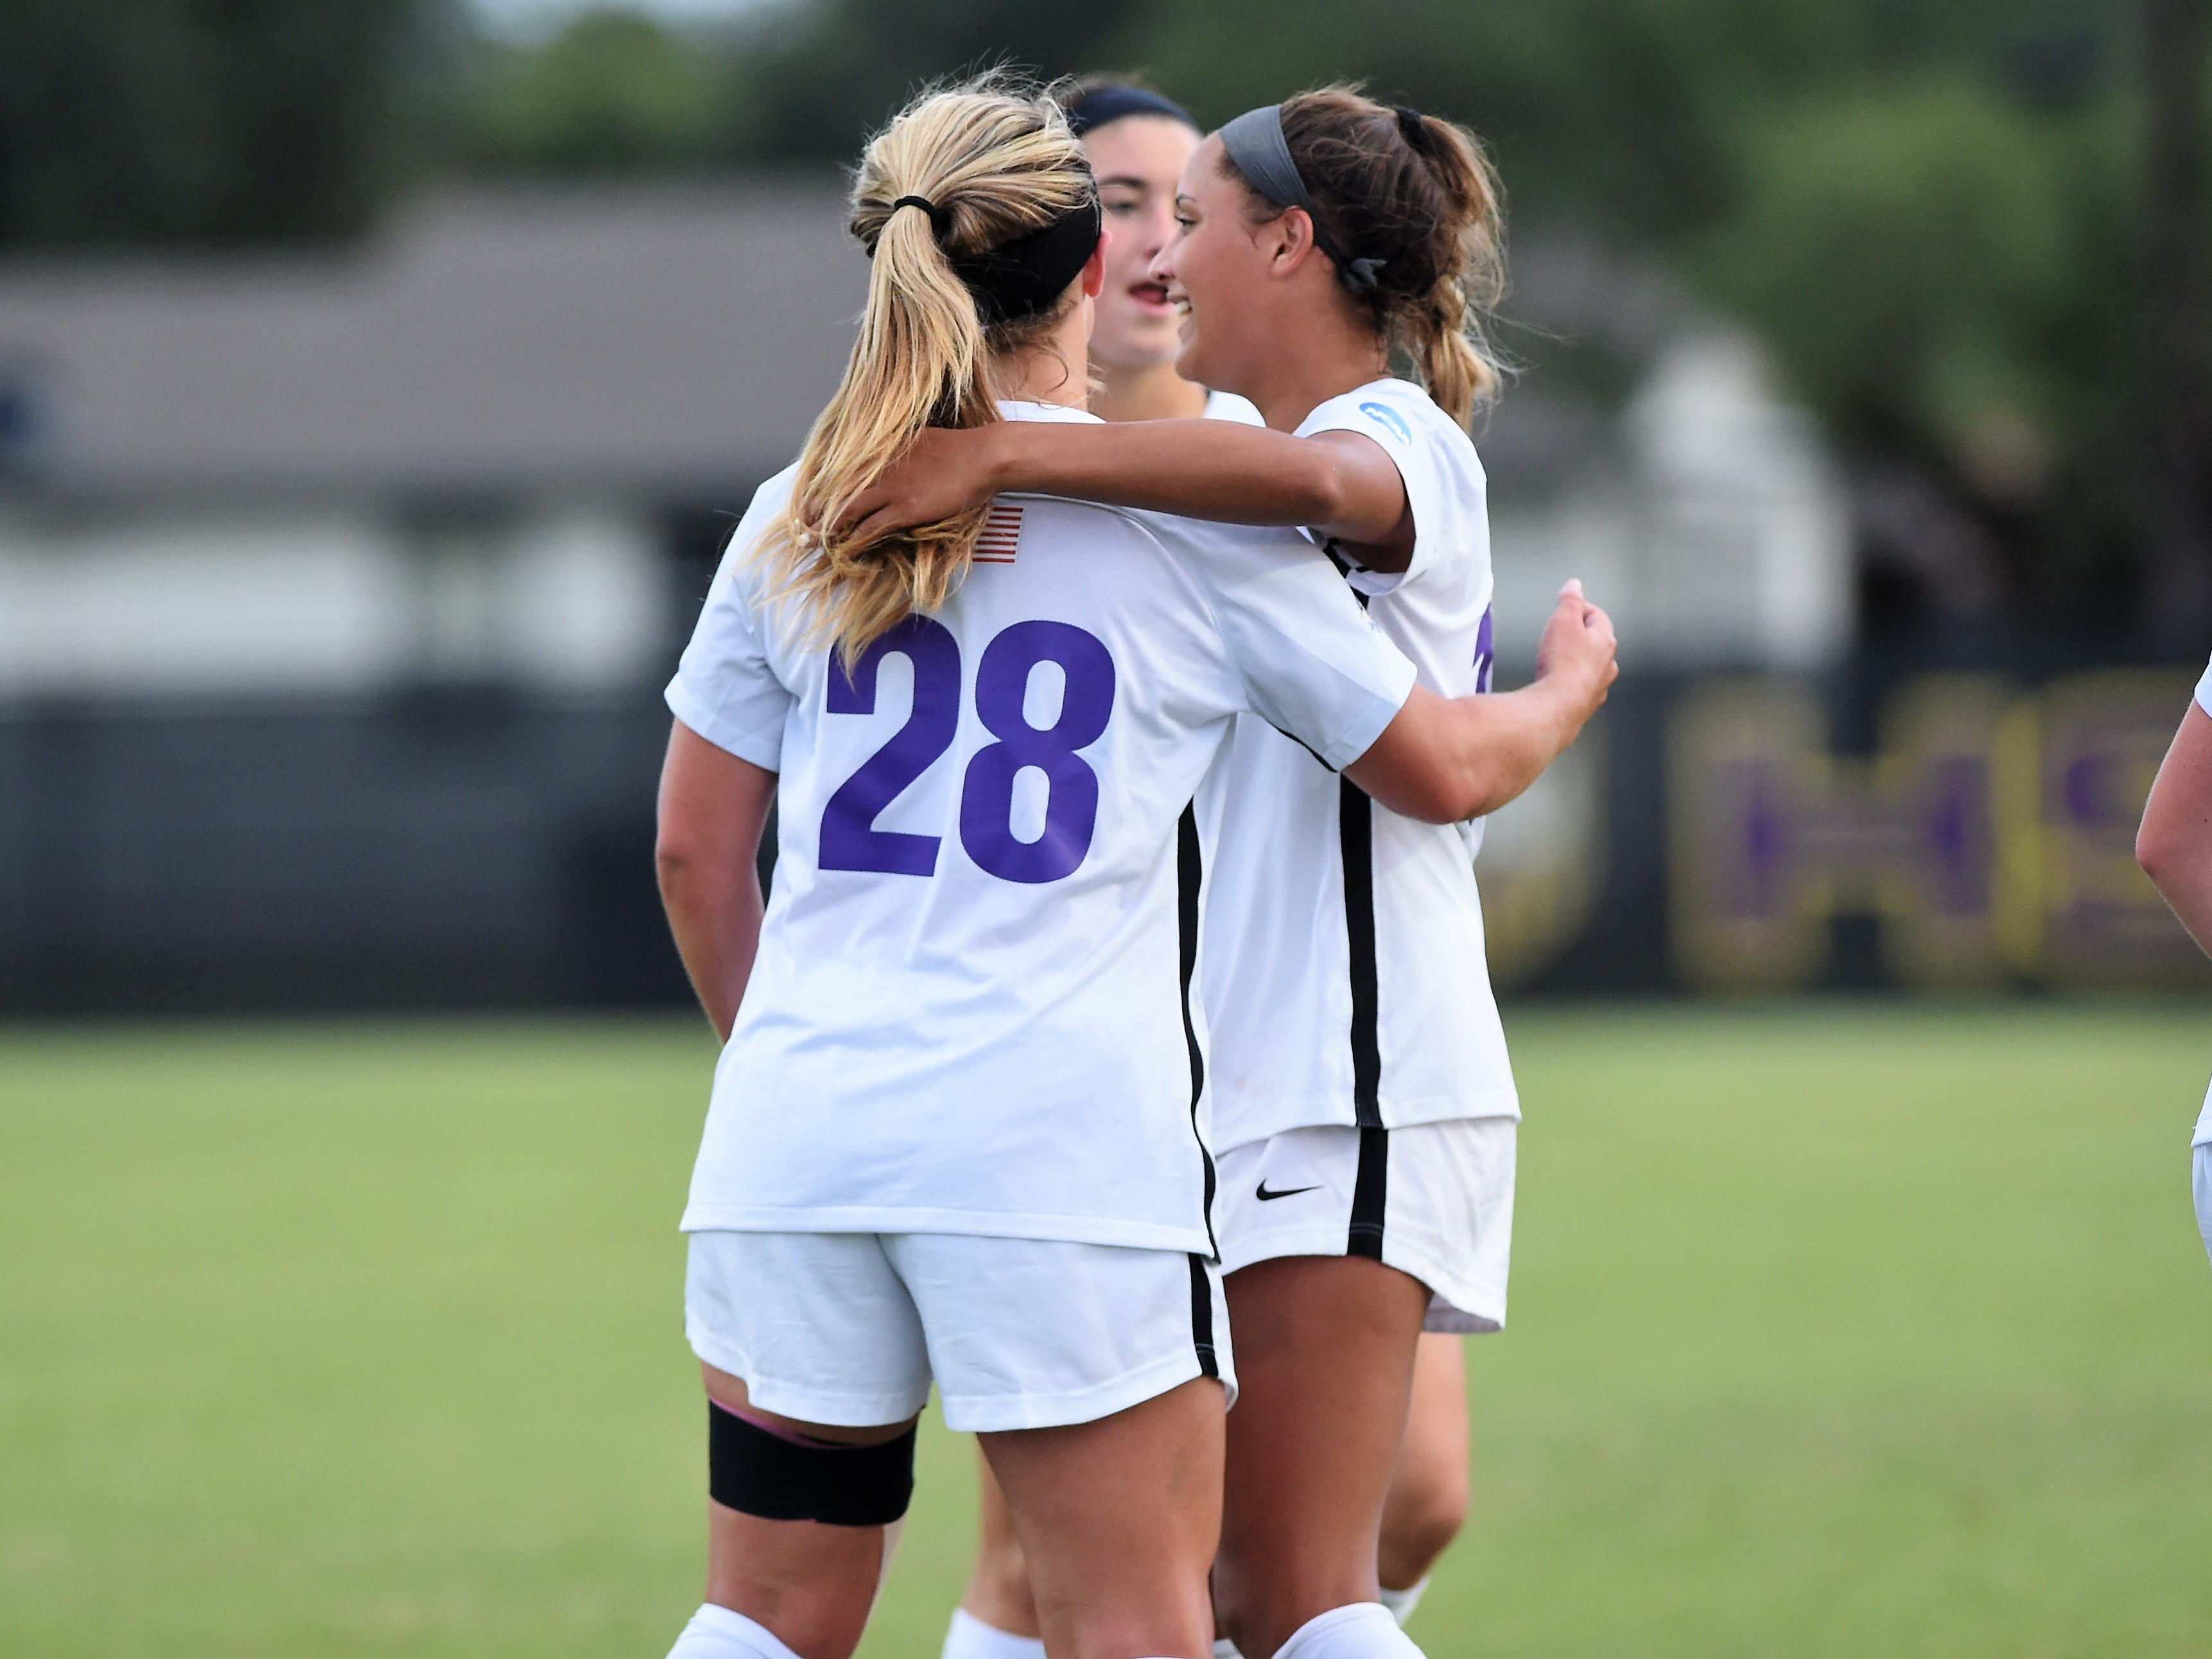 Kenne Kessler (28) is congratulated by Hardin-Simmons teammate Randie Dennison (10) after scoring her third goal against Howard Payne at the HSU Soccer Complex on Thursday, Oct. 11, 2018. The Cowgirls won 4-1.